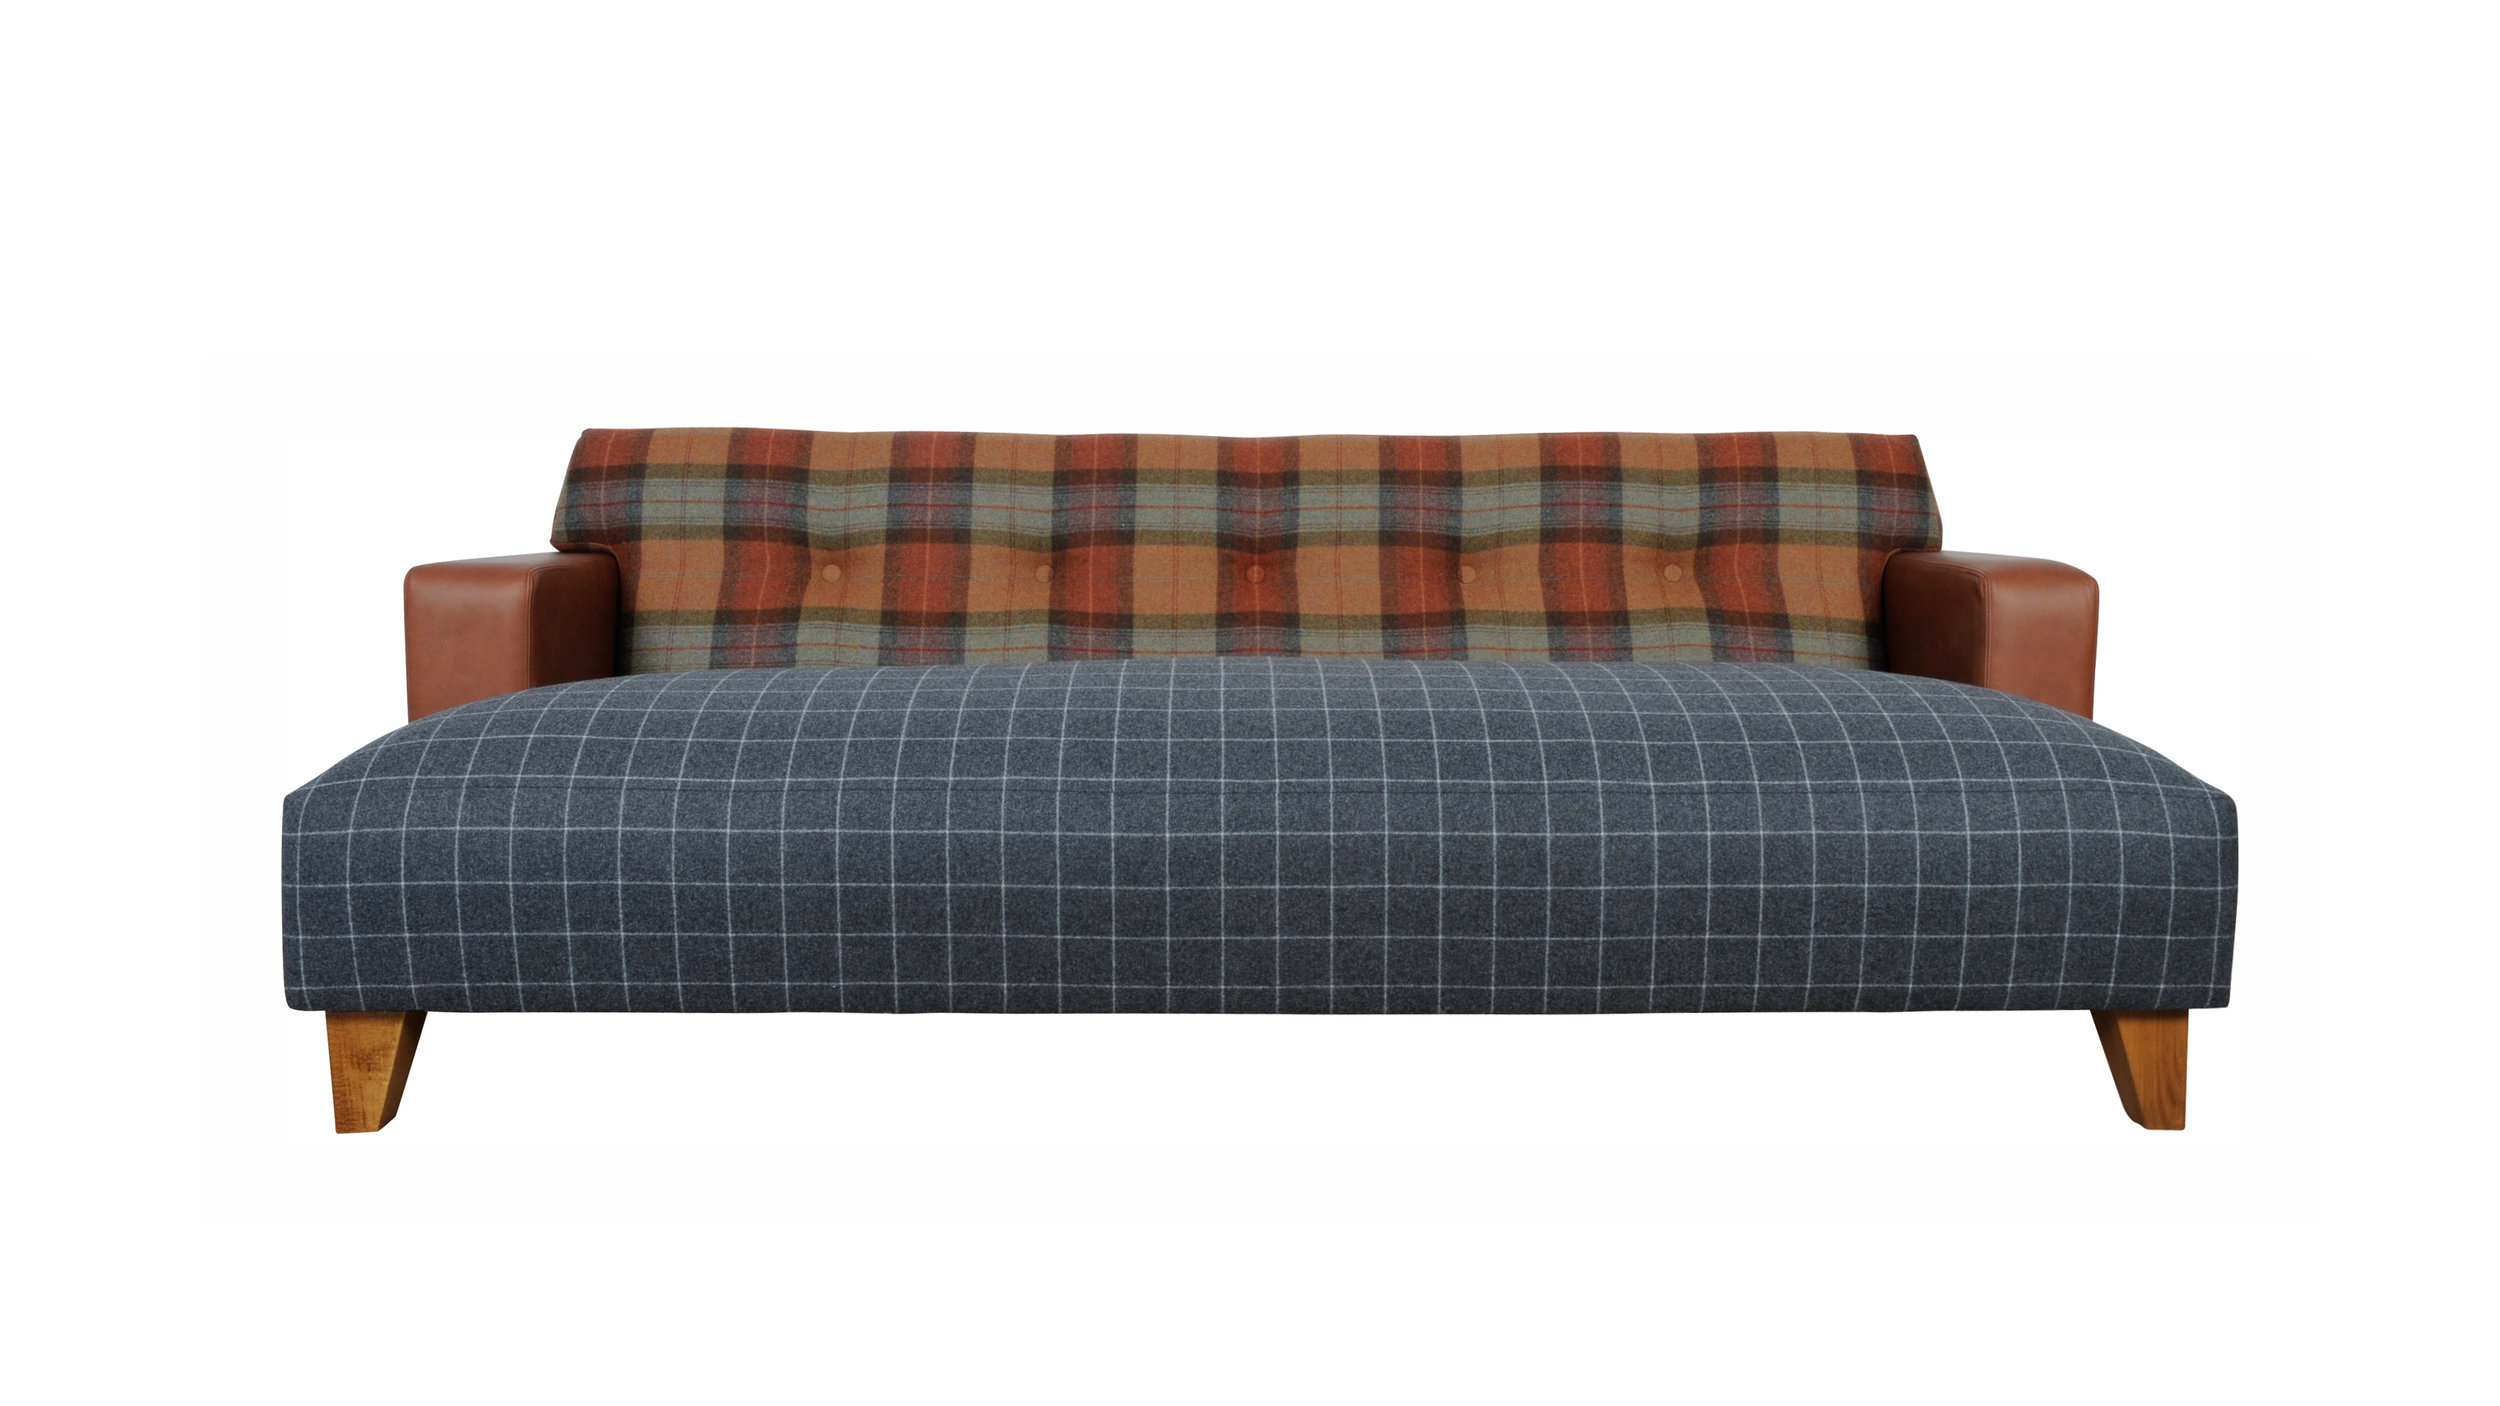 James-Plant-Design-Studio-Bisley-Sofa-Range-Extra-Large-Sofa-Front.jpg